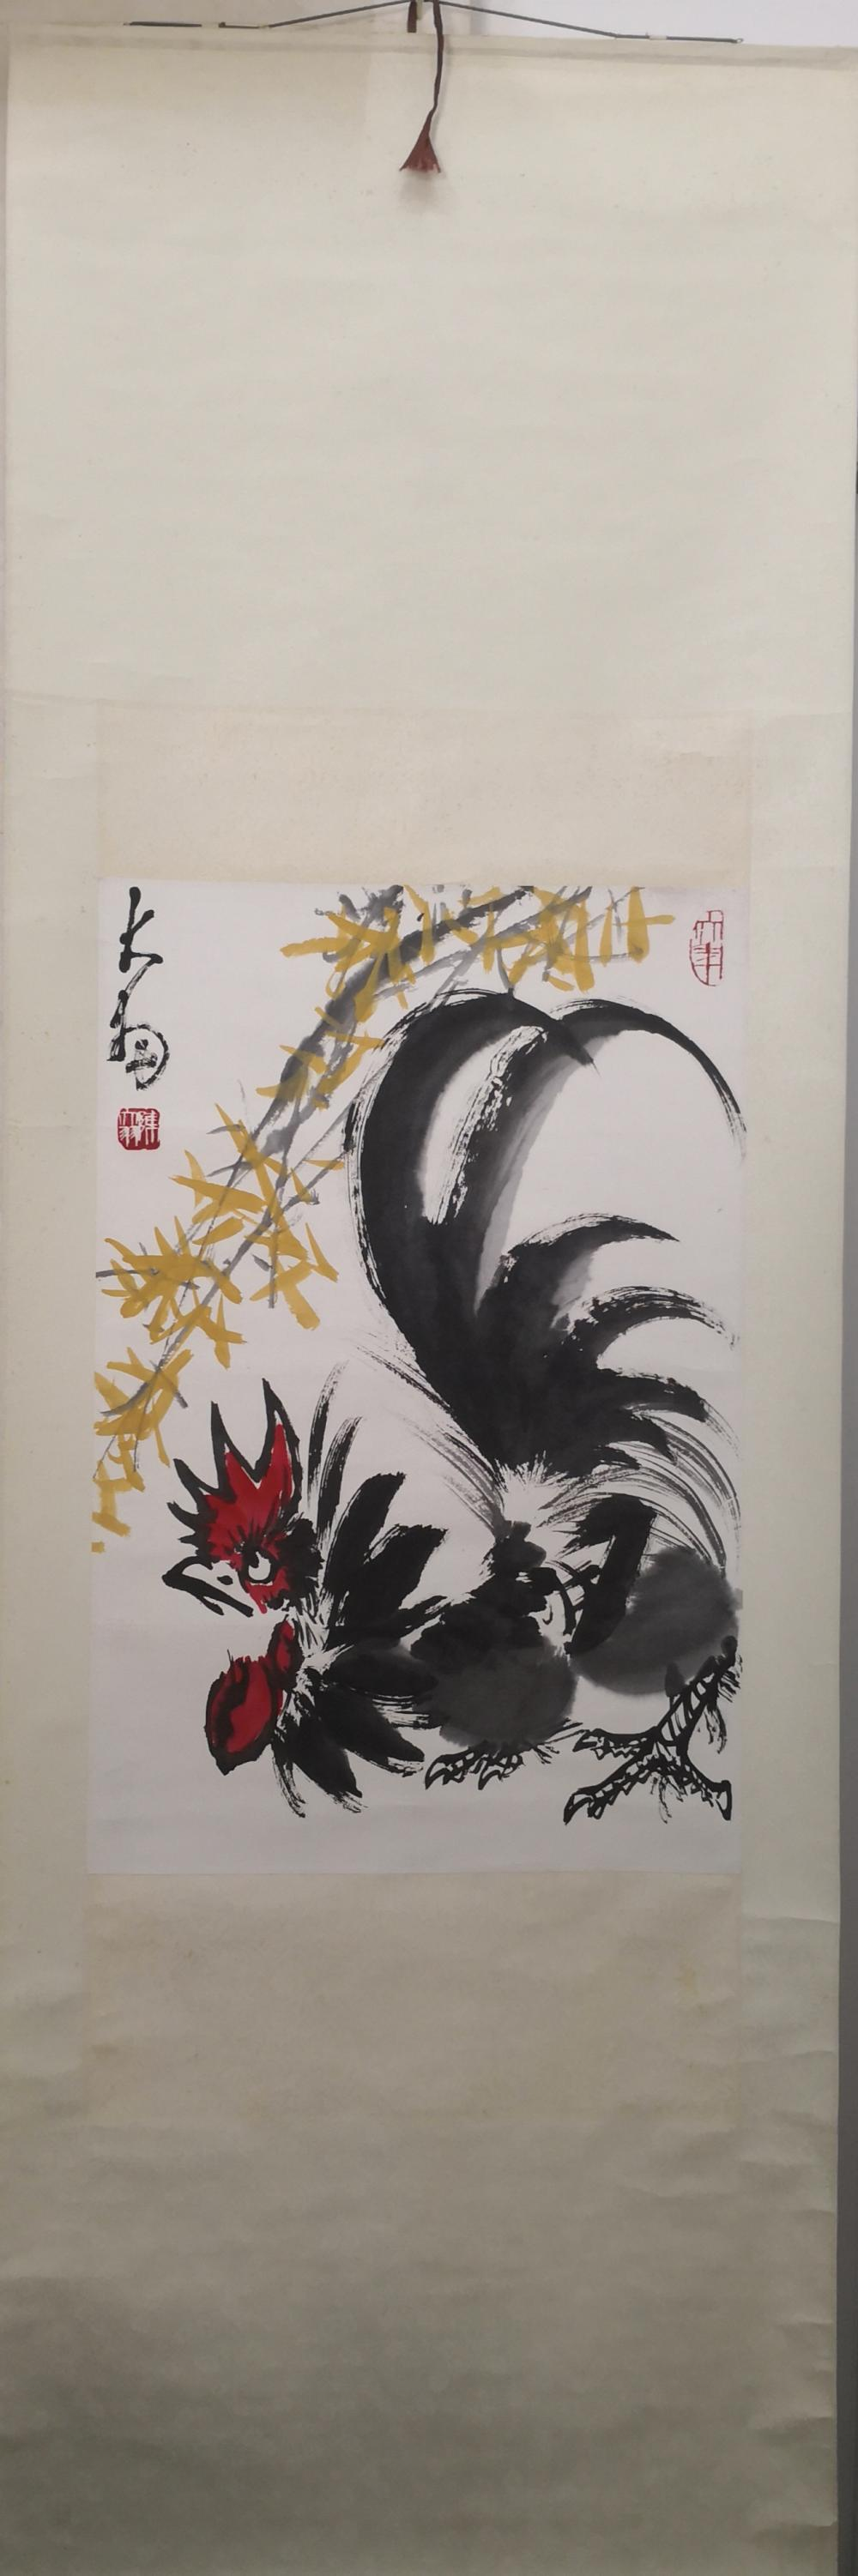 A CHINESE PAINTING OF ROOSTER BY CHEN DAYU